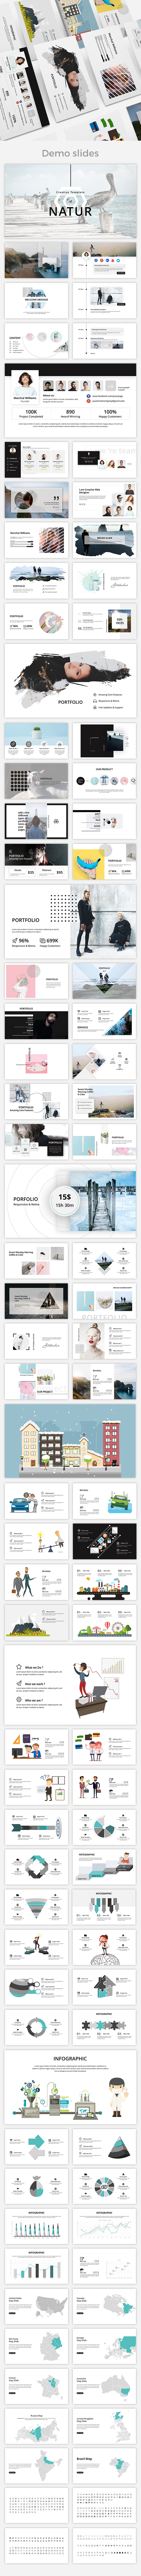 GraphicRiver Natur Creative Keynote Template 20974313